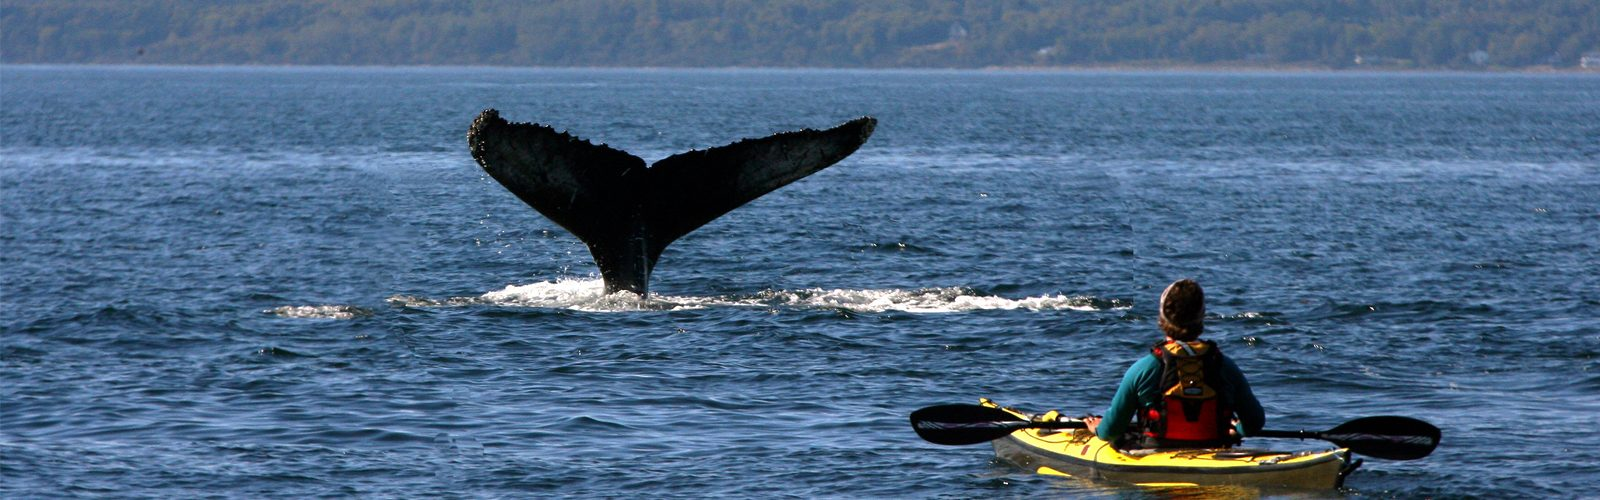 The Best Destinations In The World For Whale Watching Header